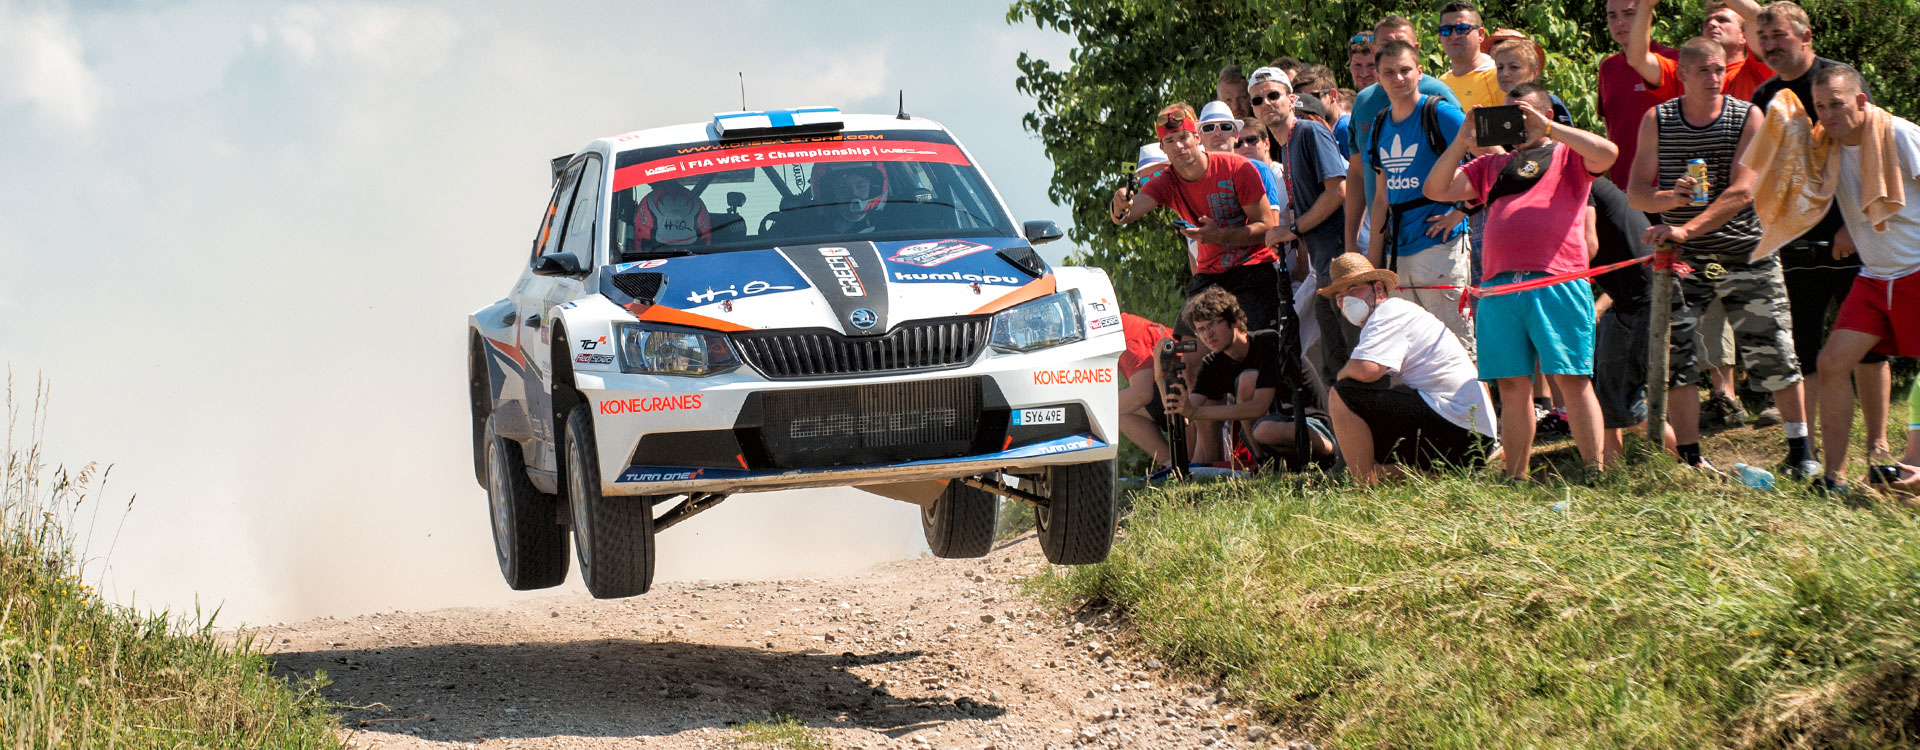 Dramatic battle for first place: ŠKODA thrills fans at the Rally Poland